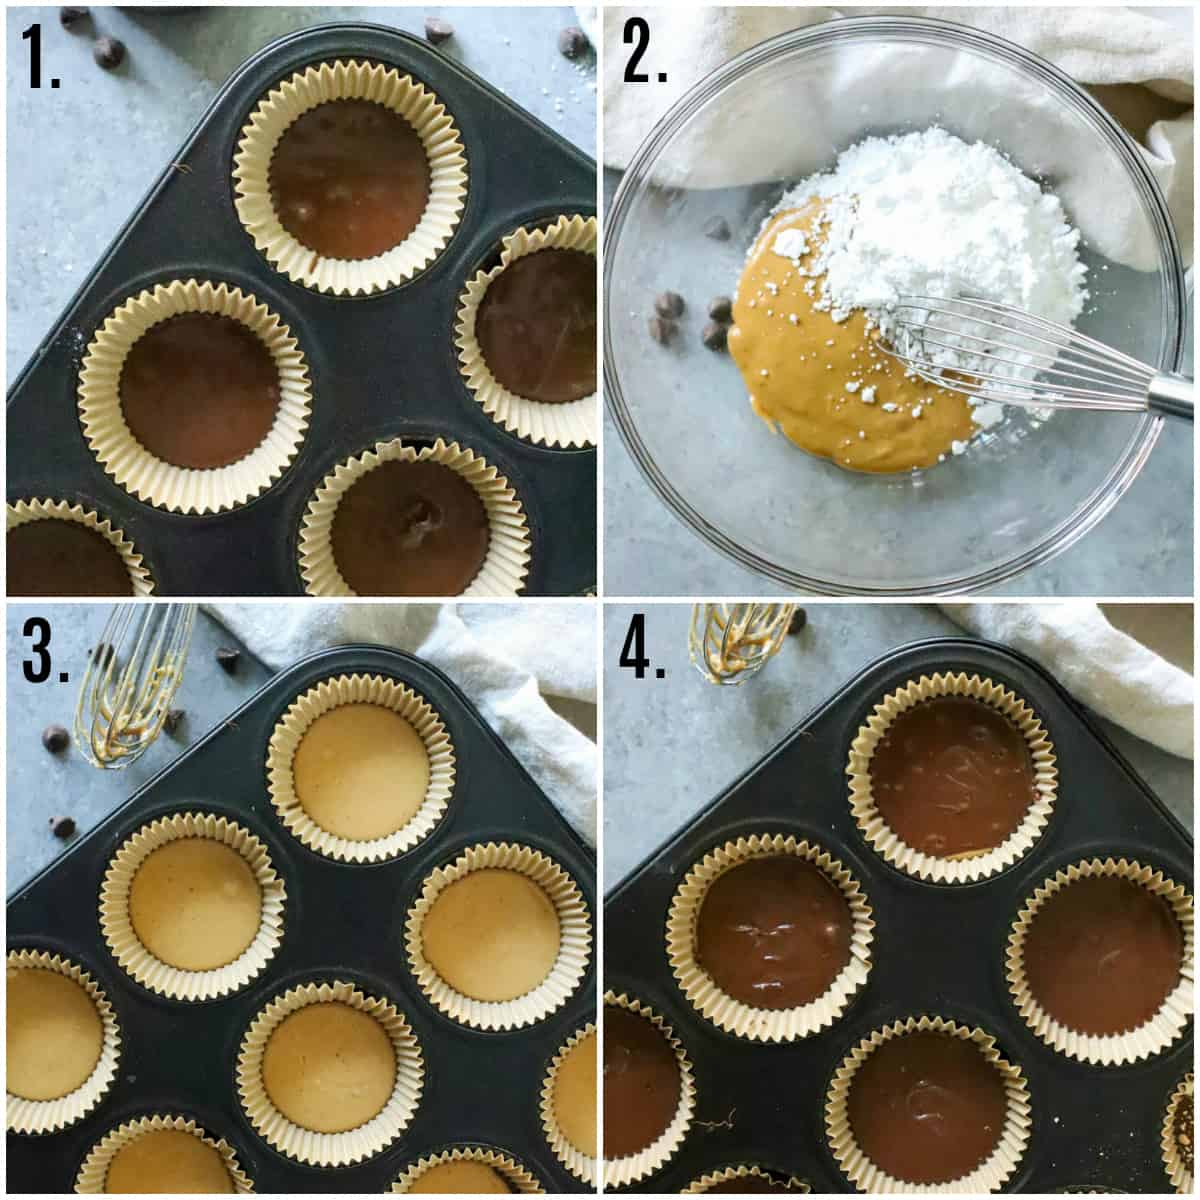 Step by step photos soon how to make Homemade Peanut Butter Cups